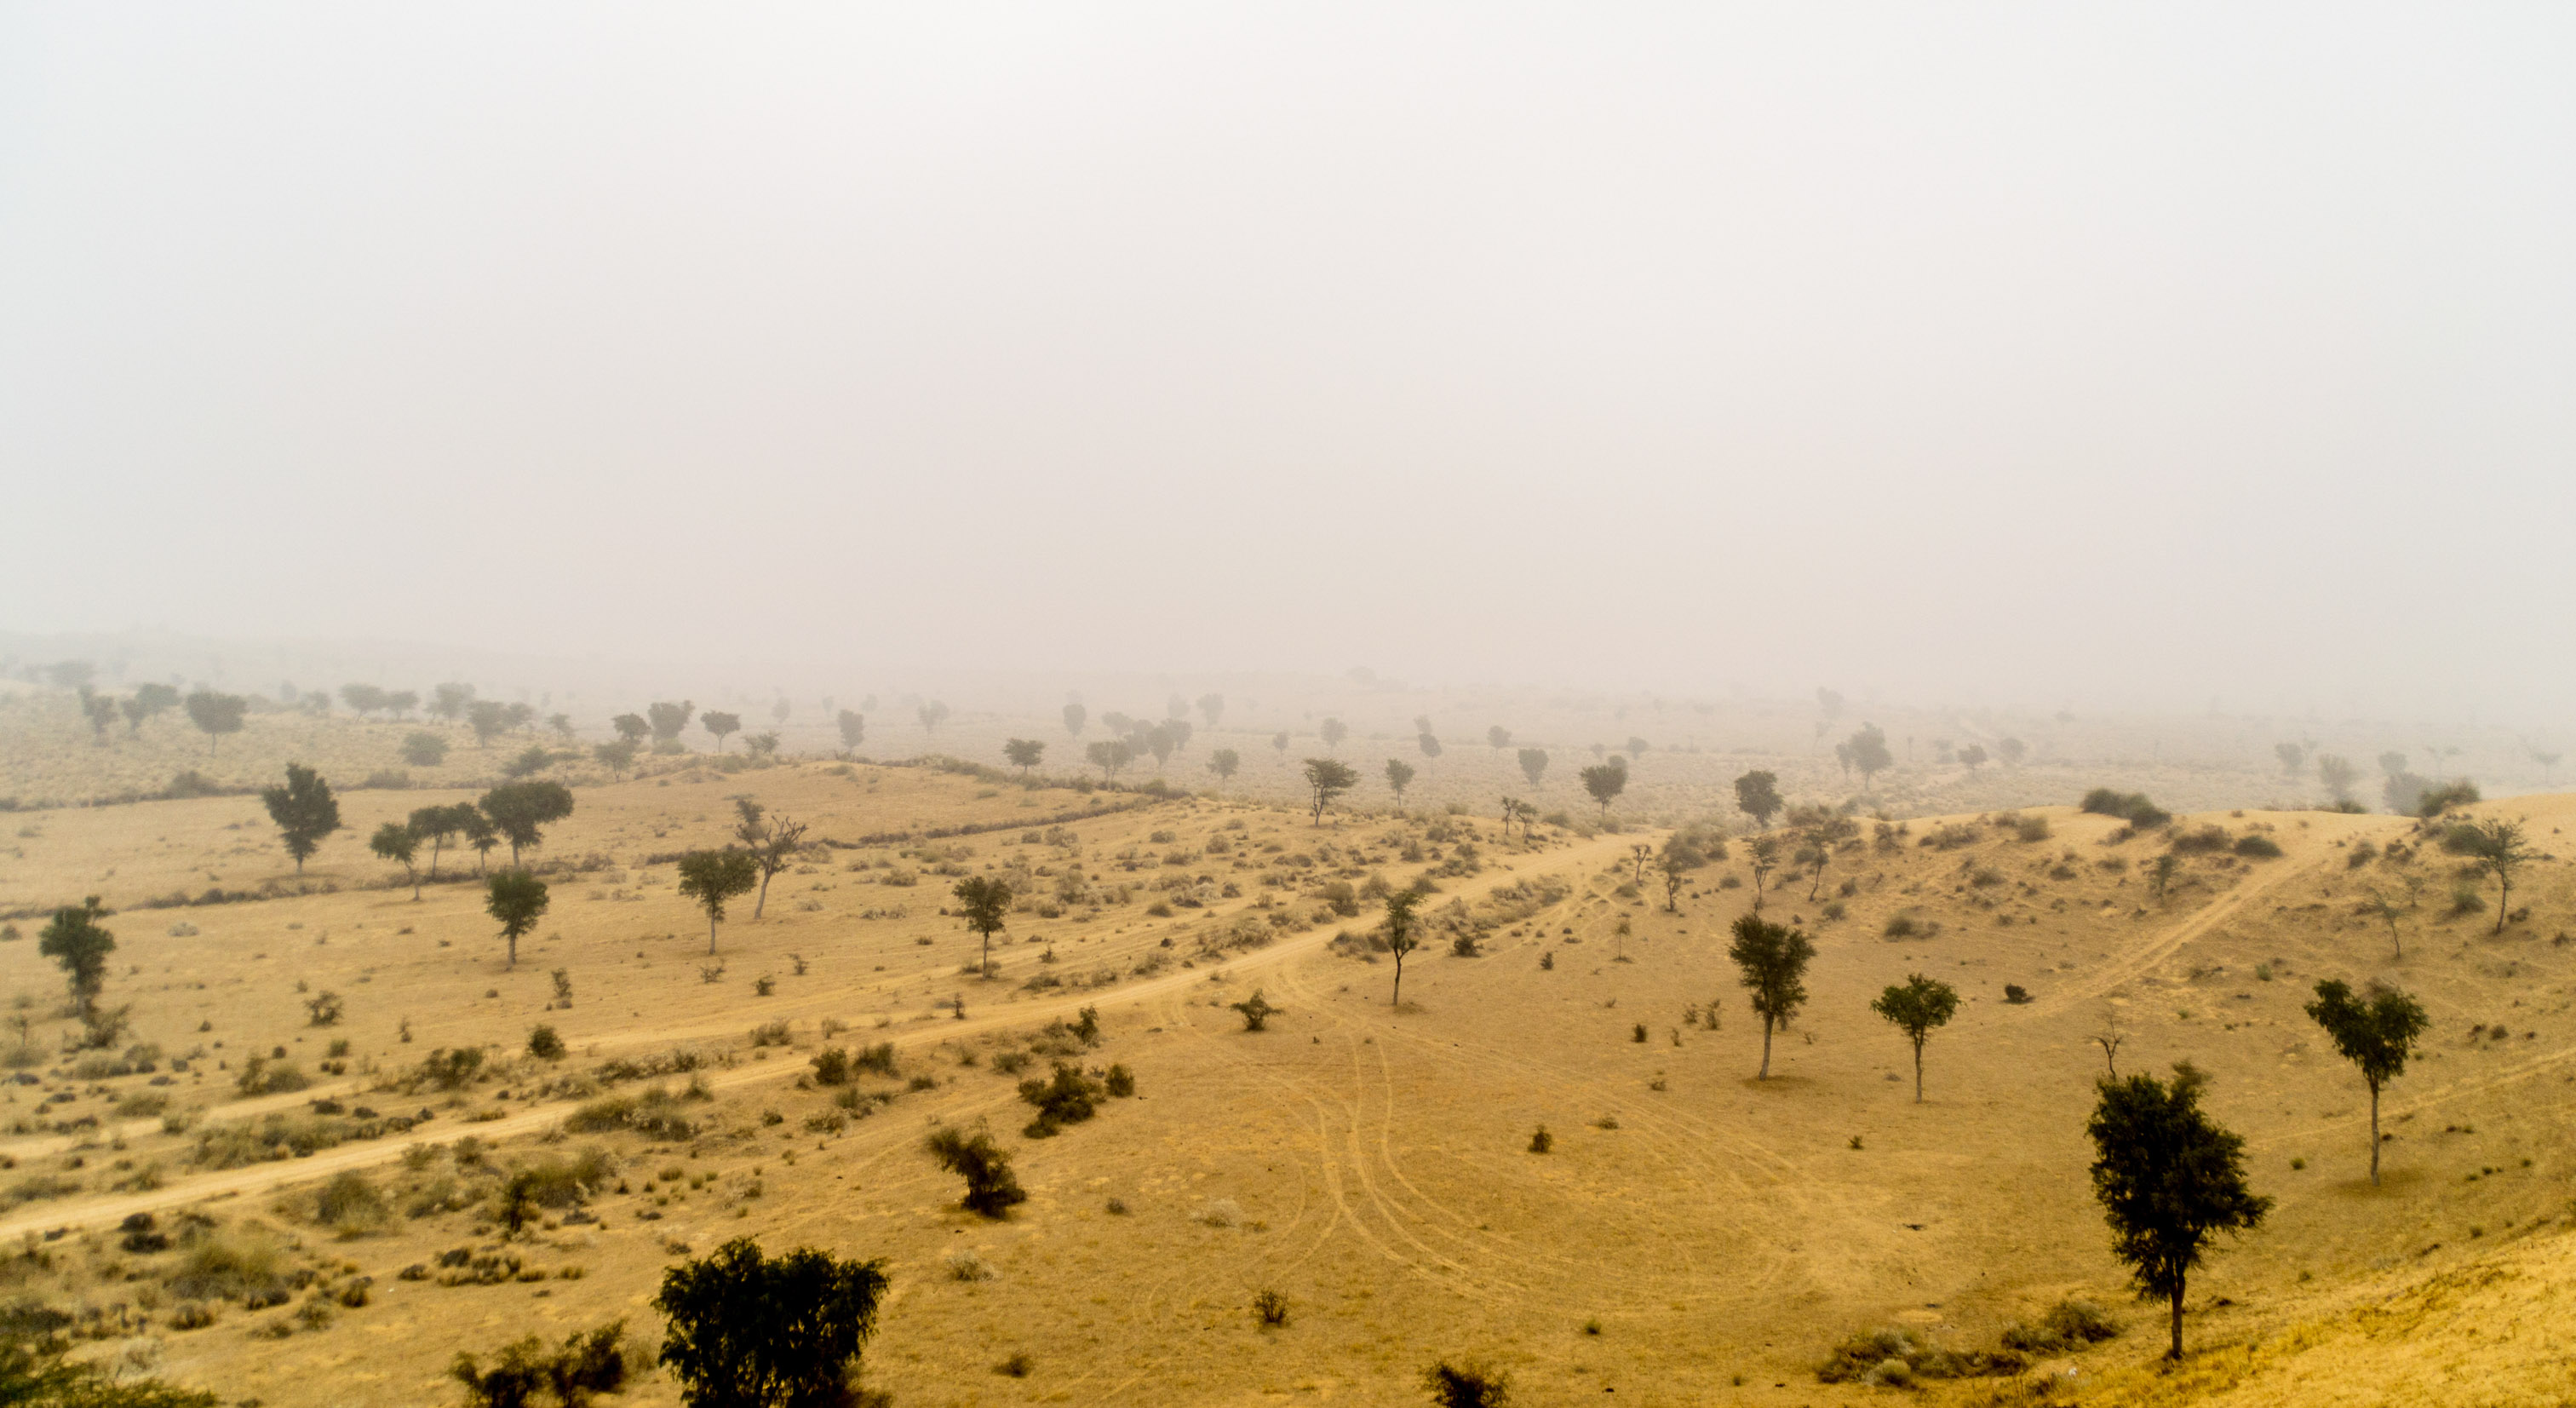 Barren Deserts enriched by Colorful People